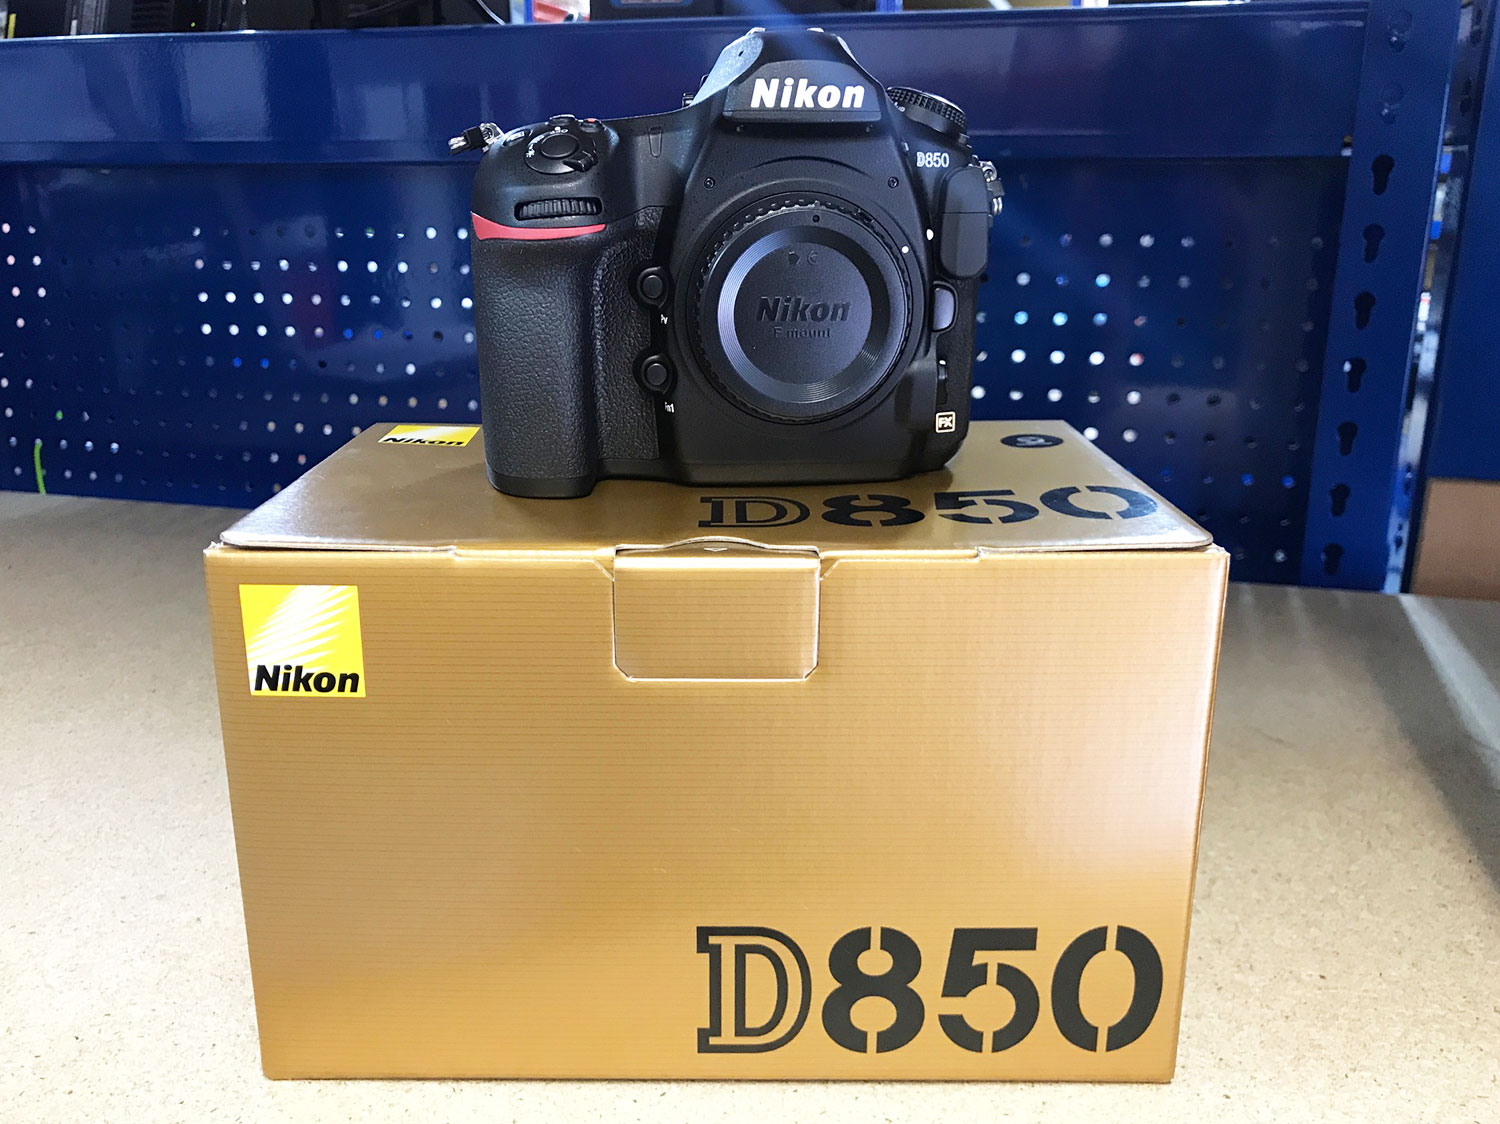 MORE IN STOCK: The Nikon D850!